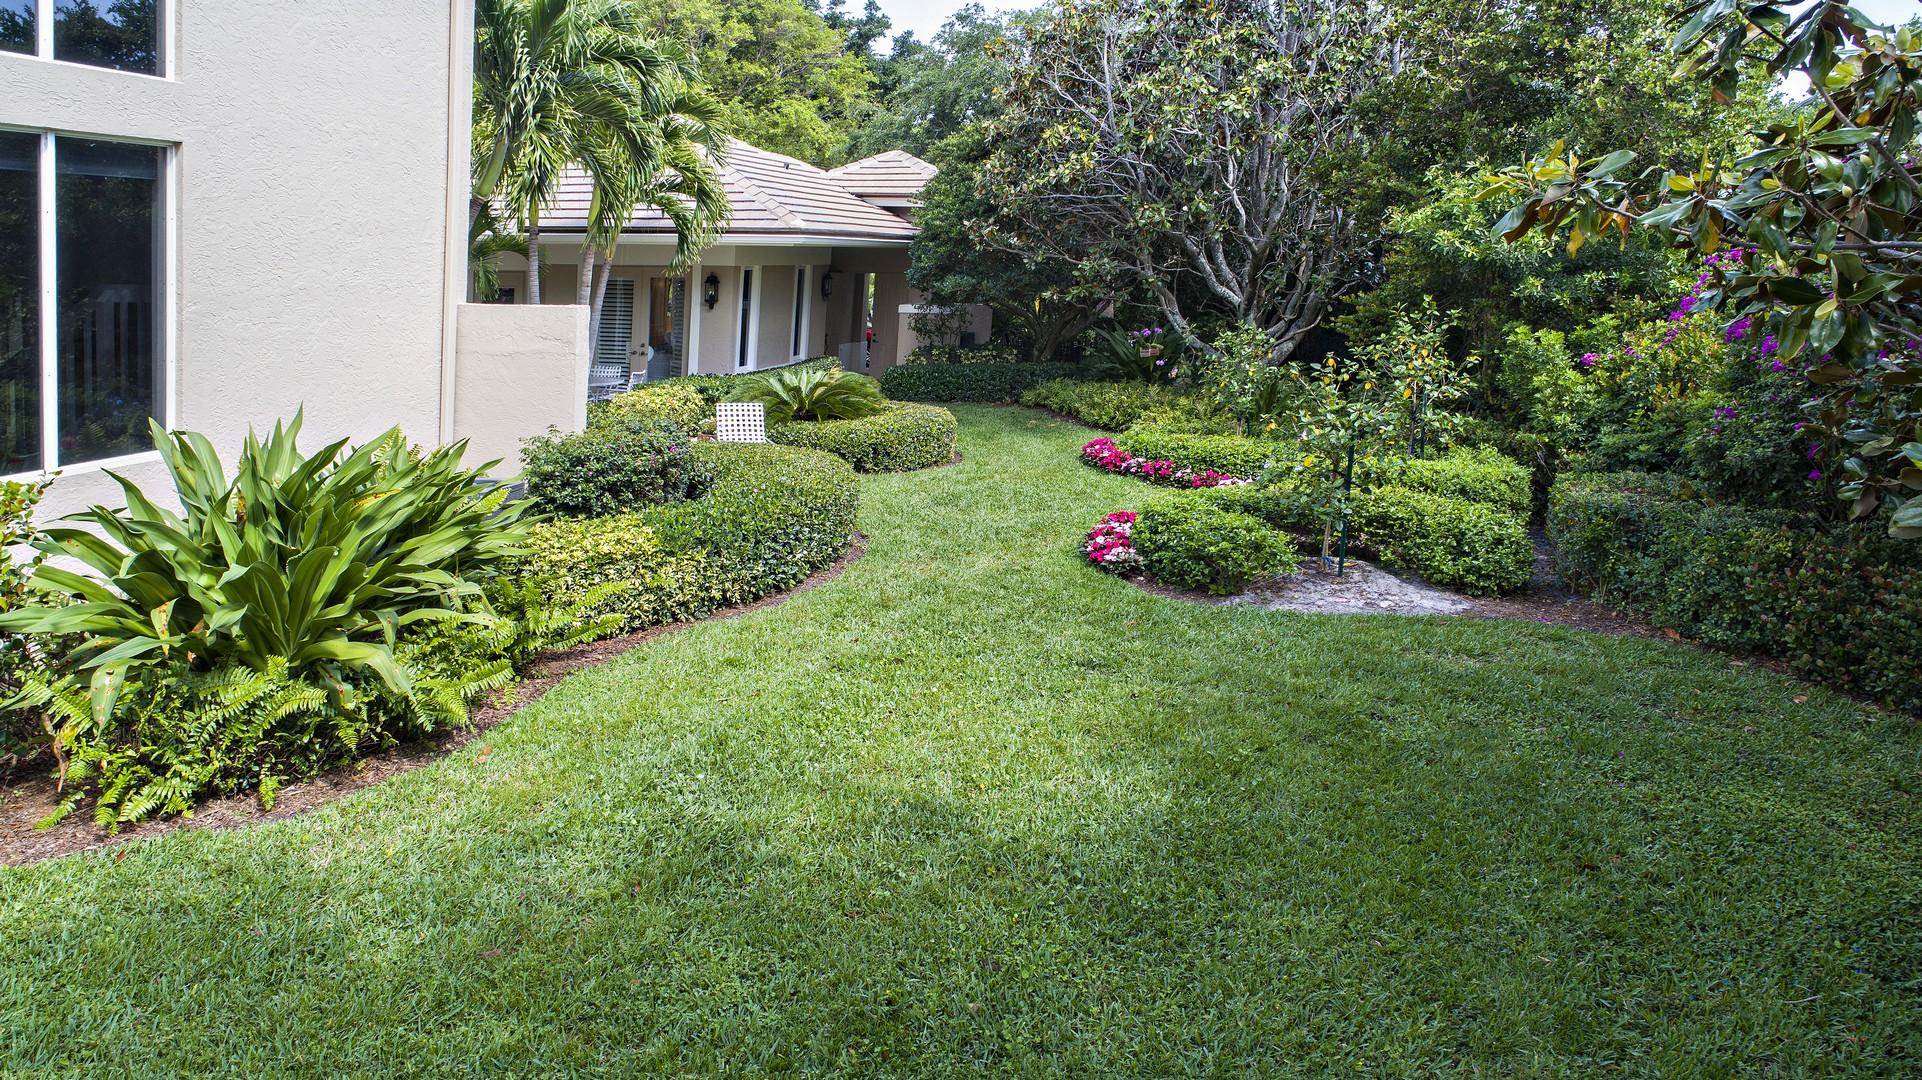 JUPITER HILLS VILLAGE PH V, LOT 62